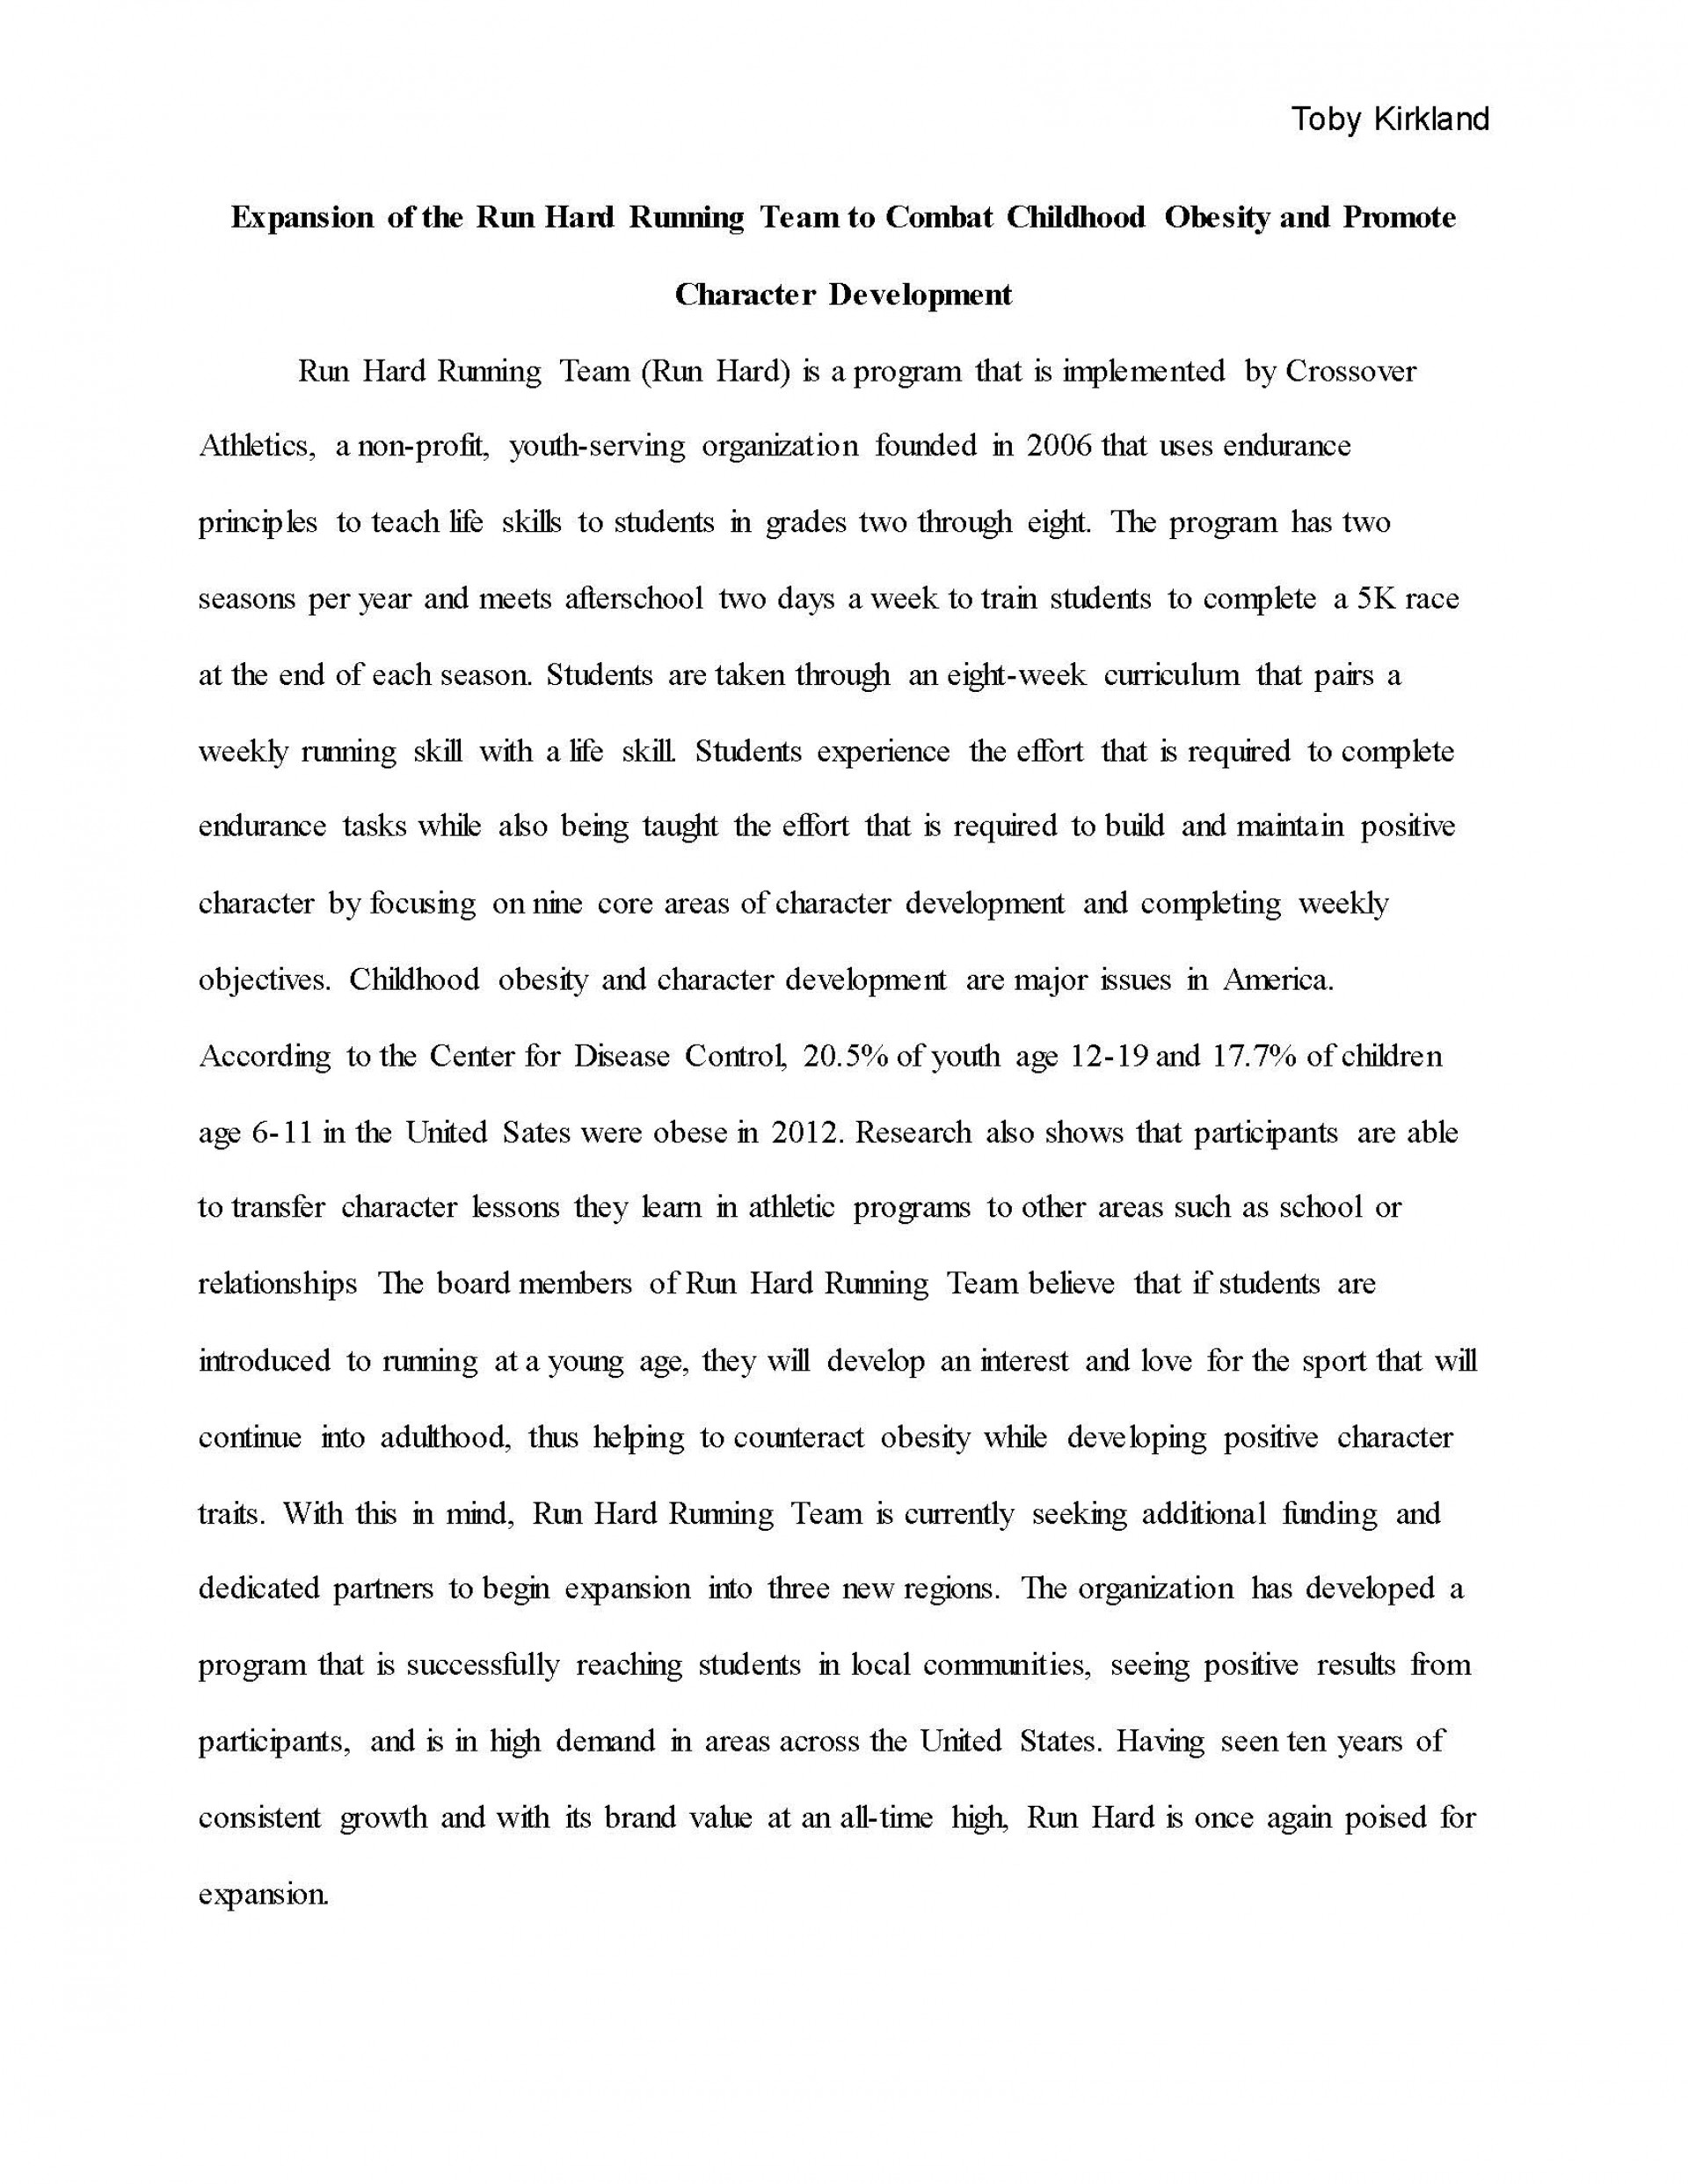 006 Childhood Obesity Research Paper Thesis Statement Toby Kirkland Final Grant Proposal Page 01 Fantastic 1920